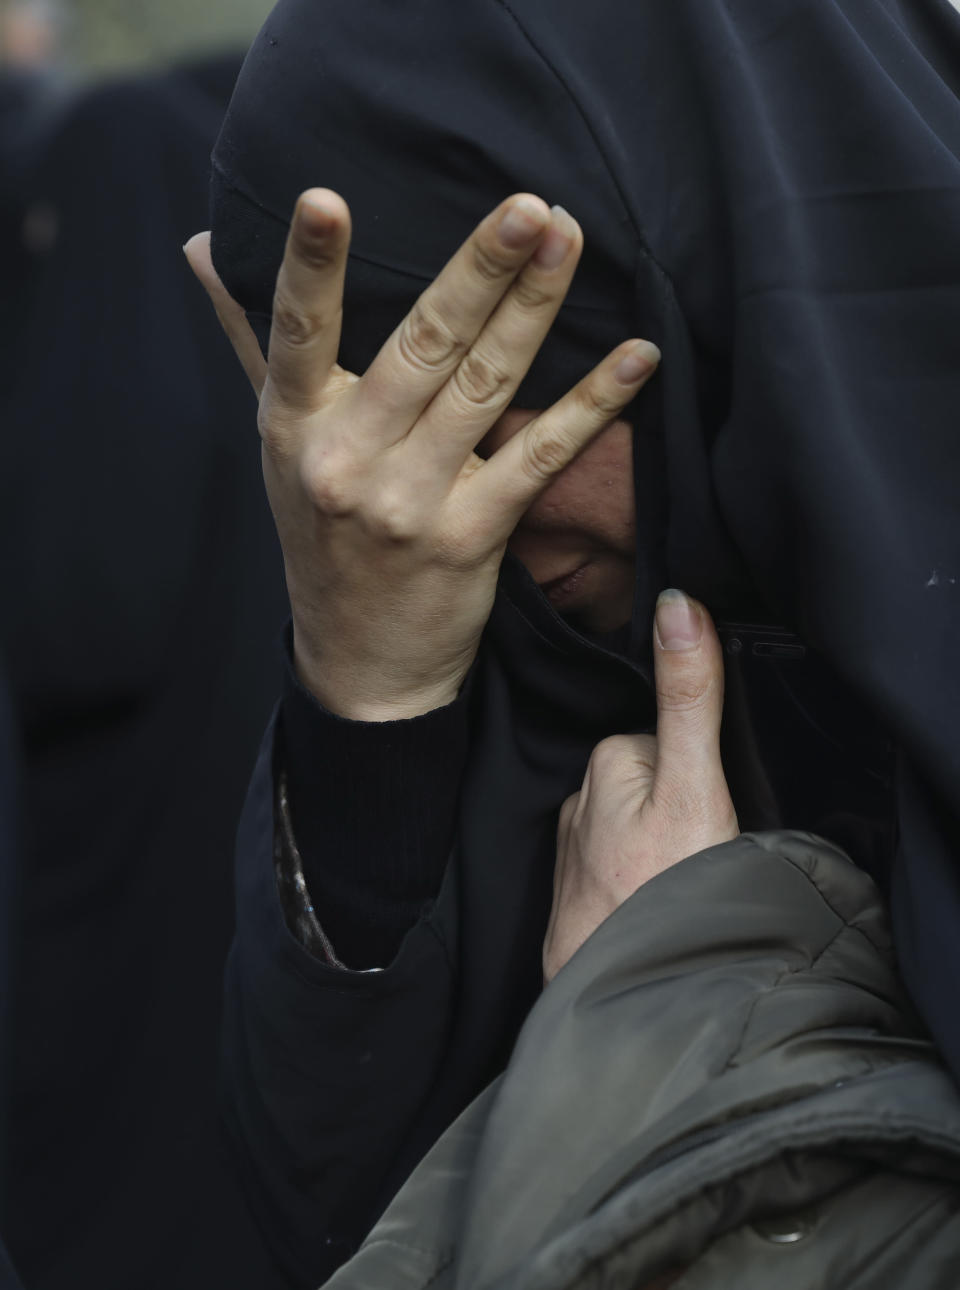 """A woman mourns in a demonstration over the U.S. airstrike in Iraq that killed Iranian Revolutionary Guard Gen. Qassem Soleimani in Tehran, Iran, Jan. 3, 2020. Iran has vowed """"harsh retaliation"""" for the U.S. airstrike near Baghdad's airport that killed Tehran's top general and the architect of its interventions across the Middle East, as tensions soared in the wake of the targeted killing. (AP Photo/Vahid Salemi)"""